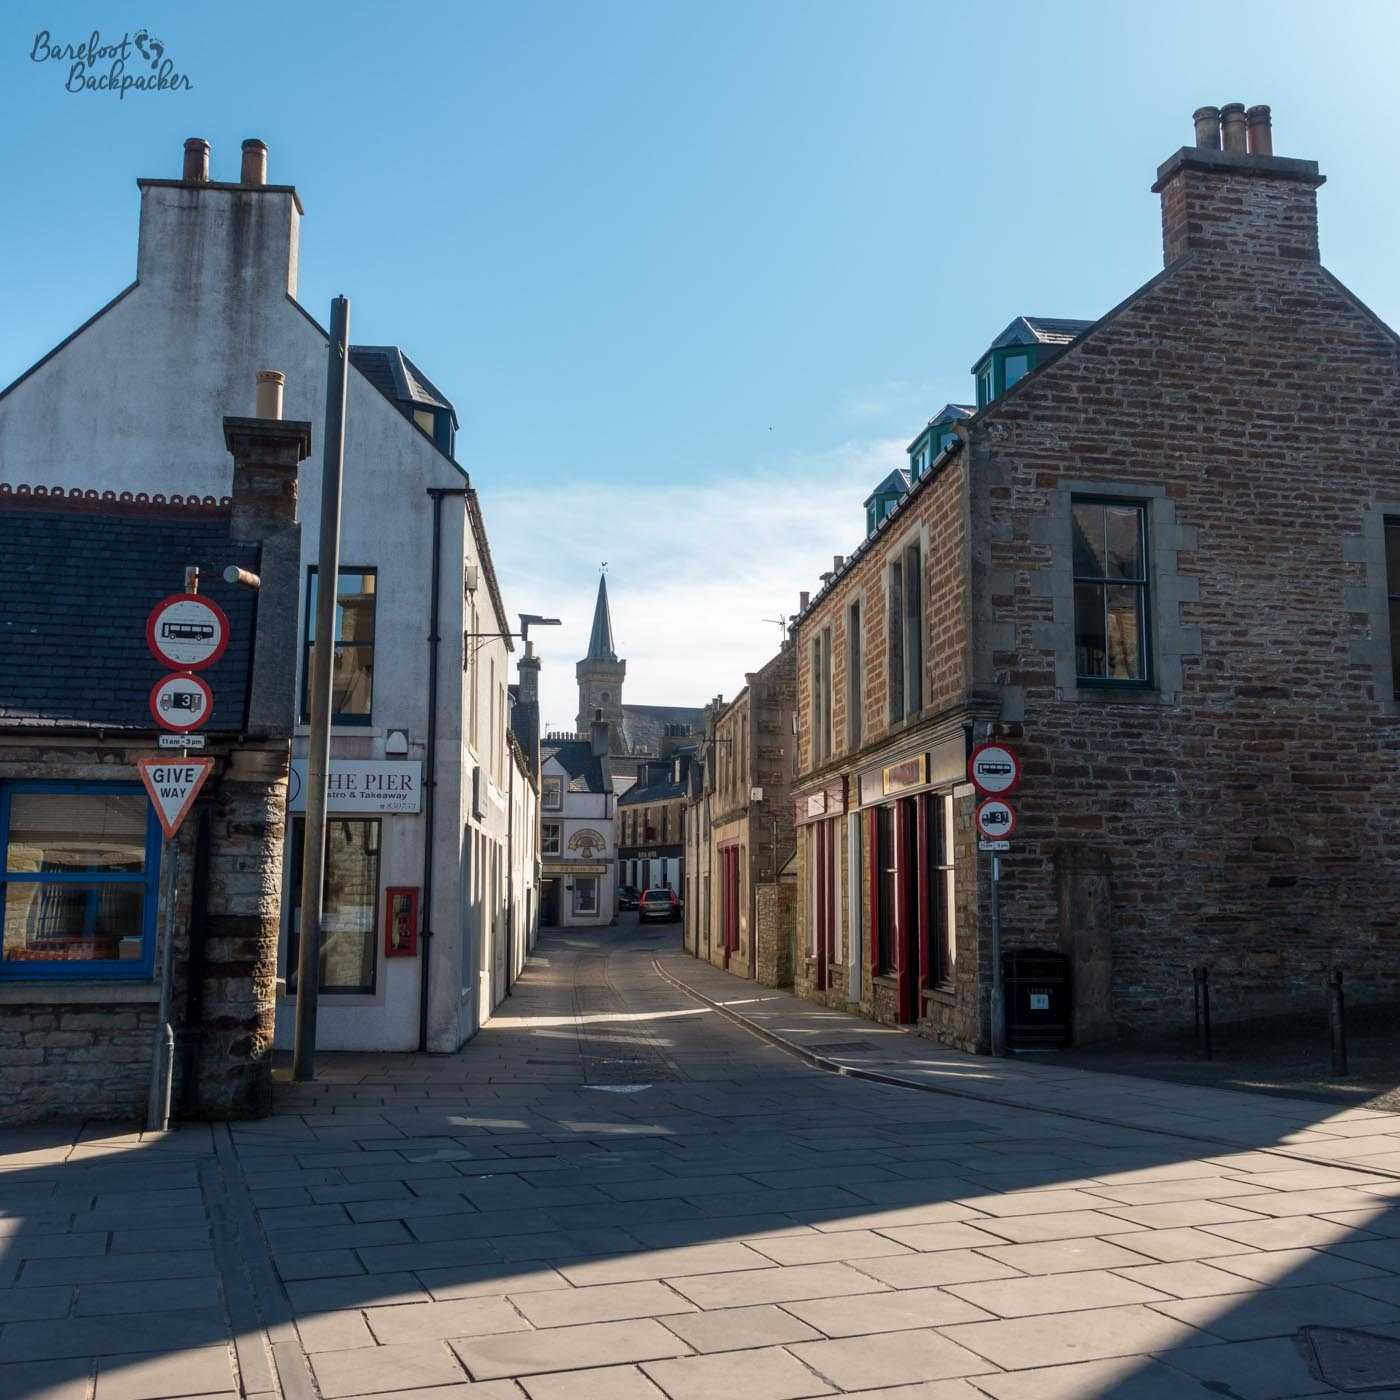 Picture of the town centre of Stromness. There are brick and stone buildings on a square, either side of a road. All the roads are paved with flat flagstones rather than tarmac. In the distance down the street is a church spire.